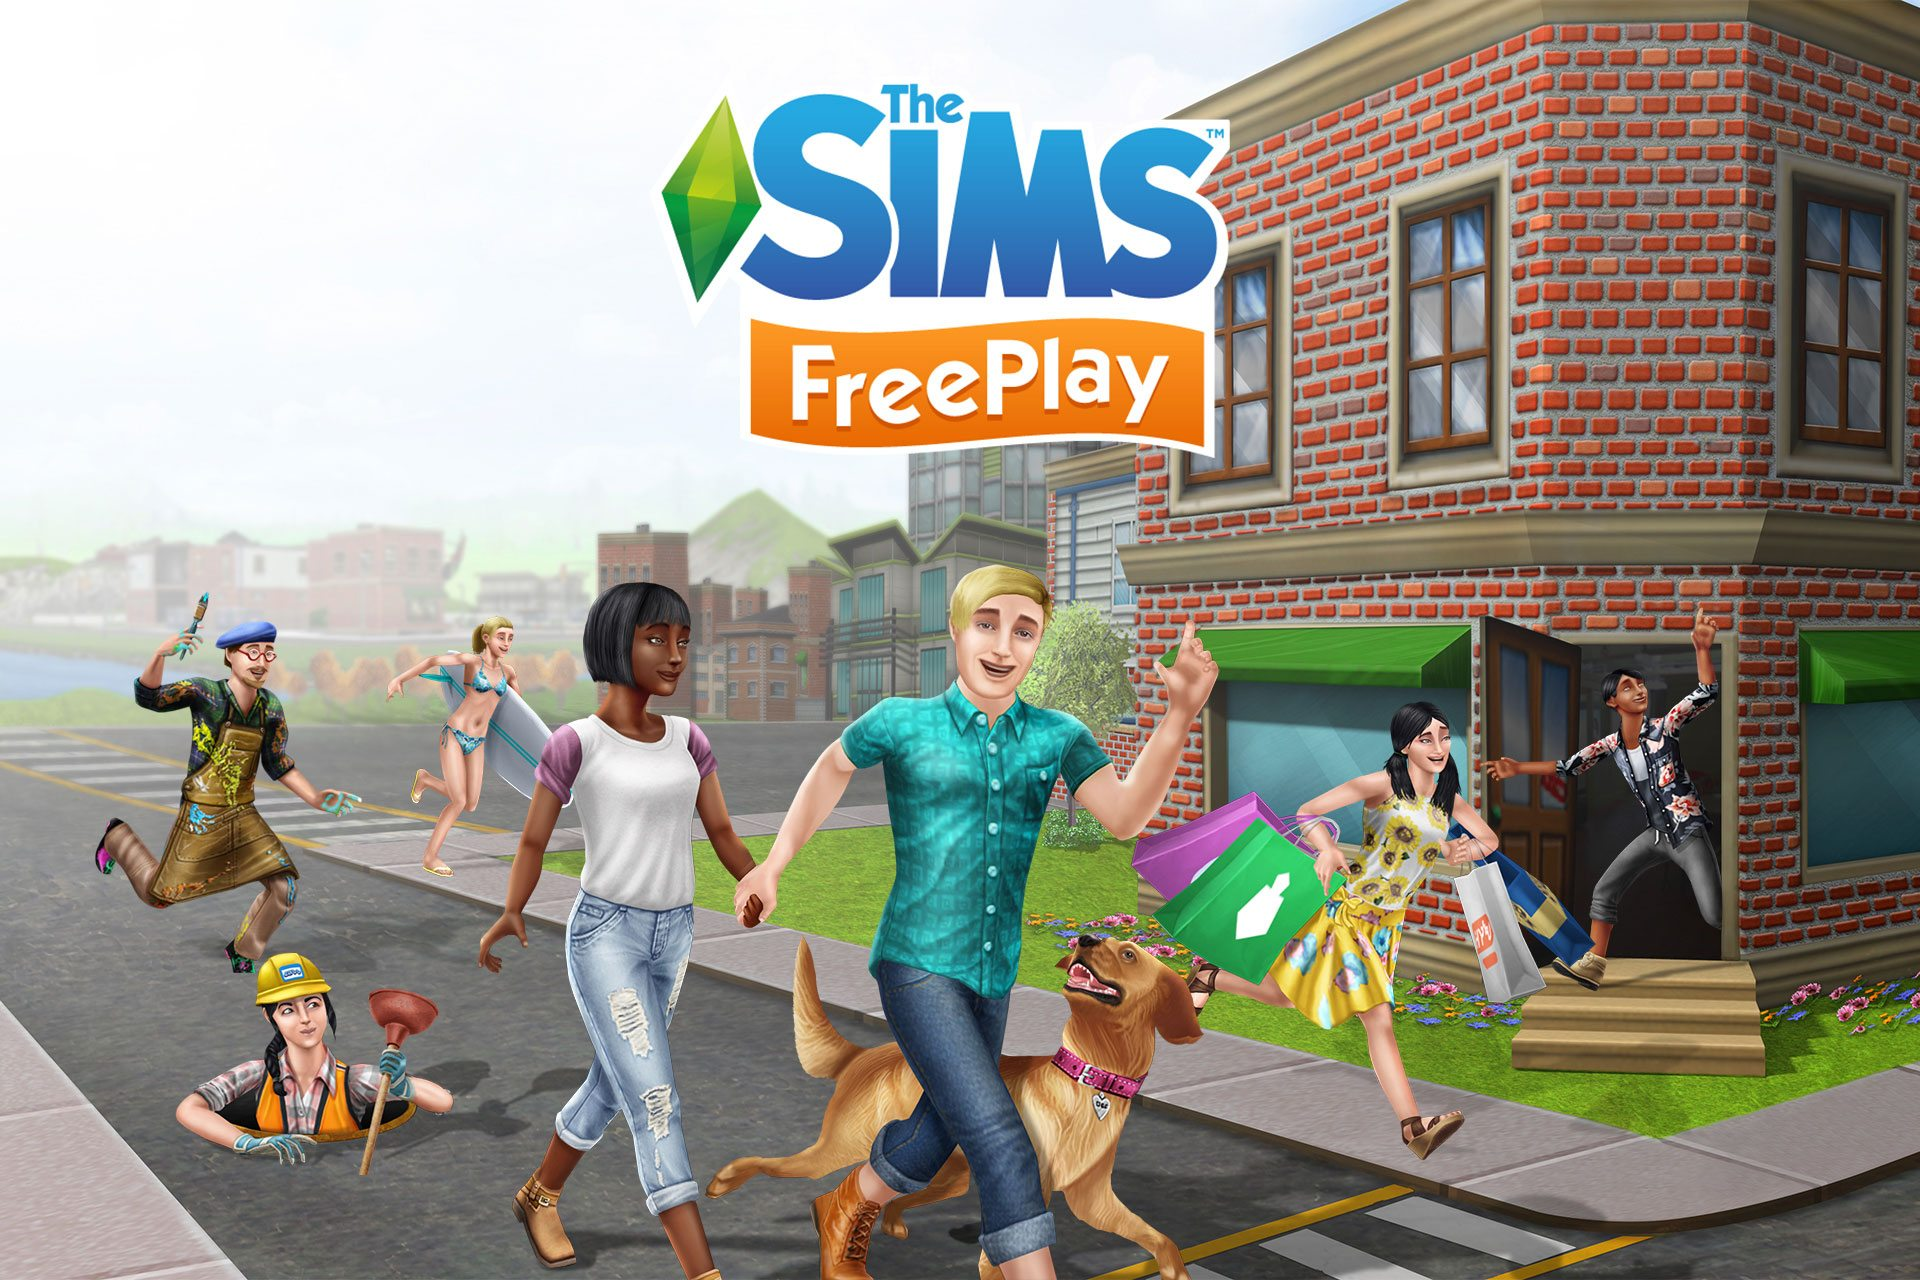 Teens Arrive in The Sims Freeplay